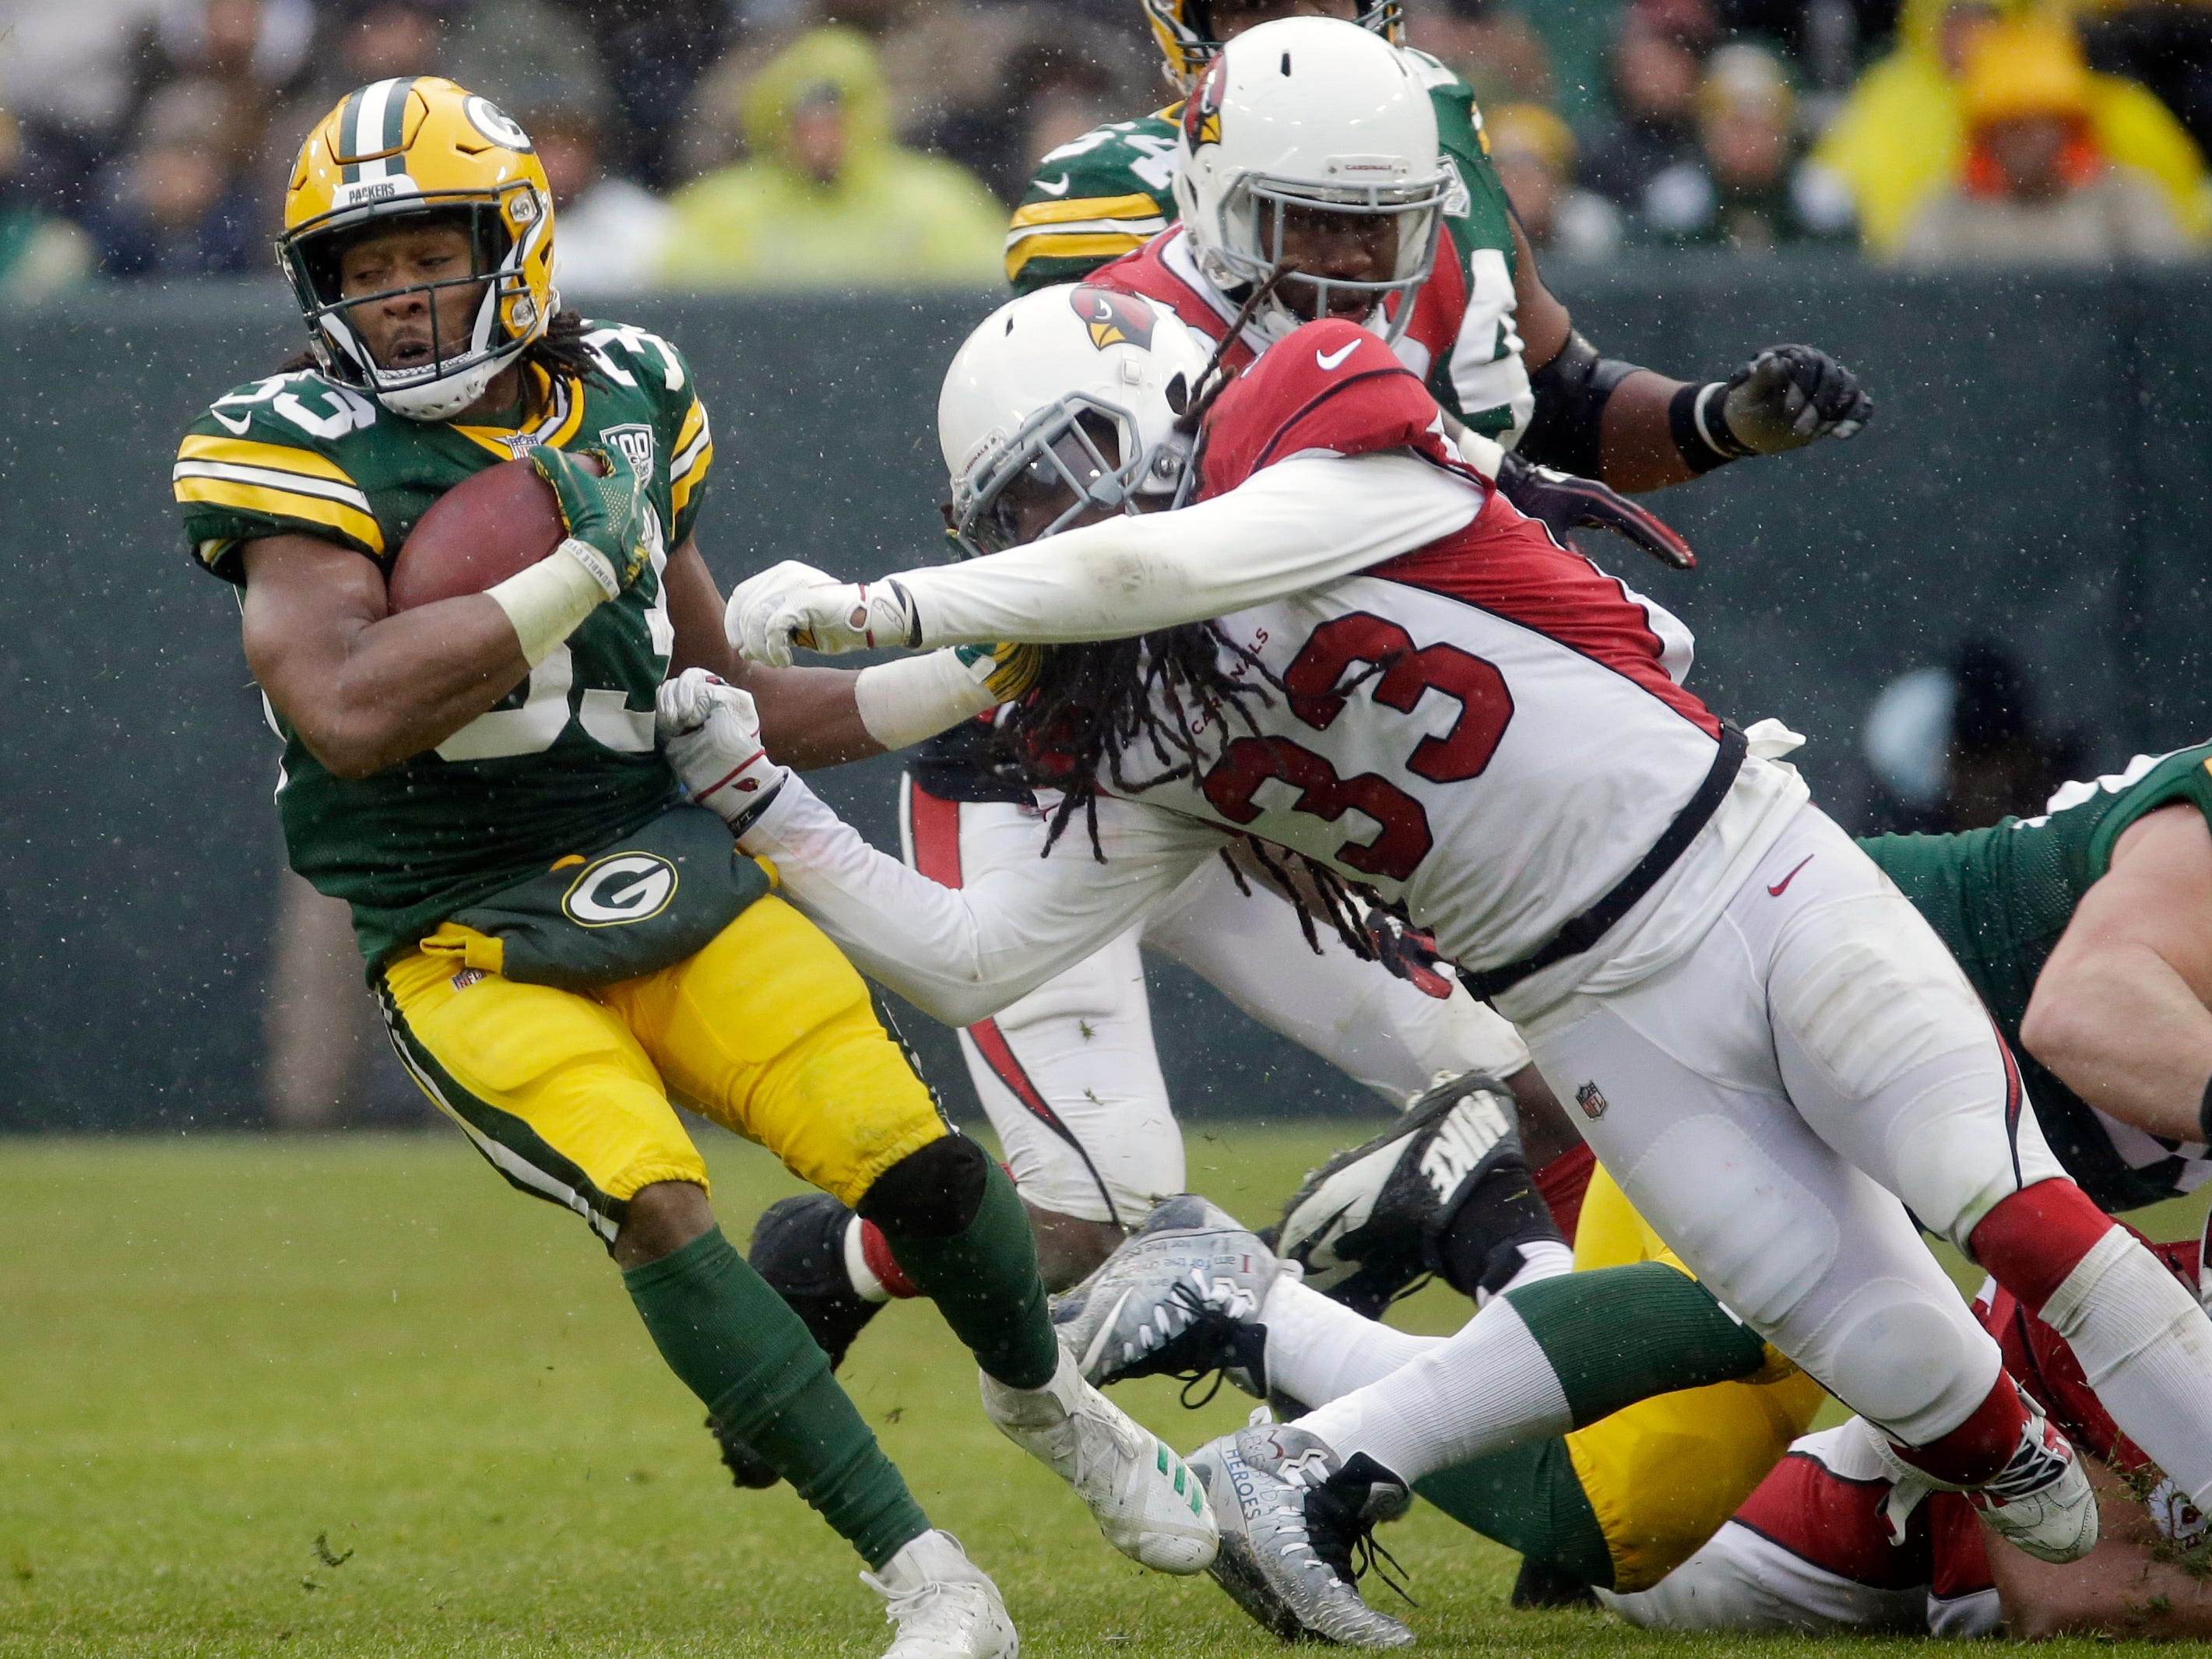 Green Bay Packers running back Aaron Jones is hit during a run by Arizona Cardinals defensive back Tre Boston during the second half of an NFL football game Sunday, Dec. 2, 2018, in Green Bay, Wis. (AP Photo/Mike Roemer)